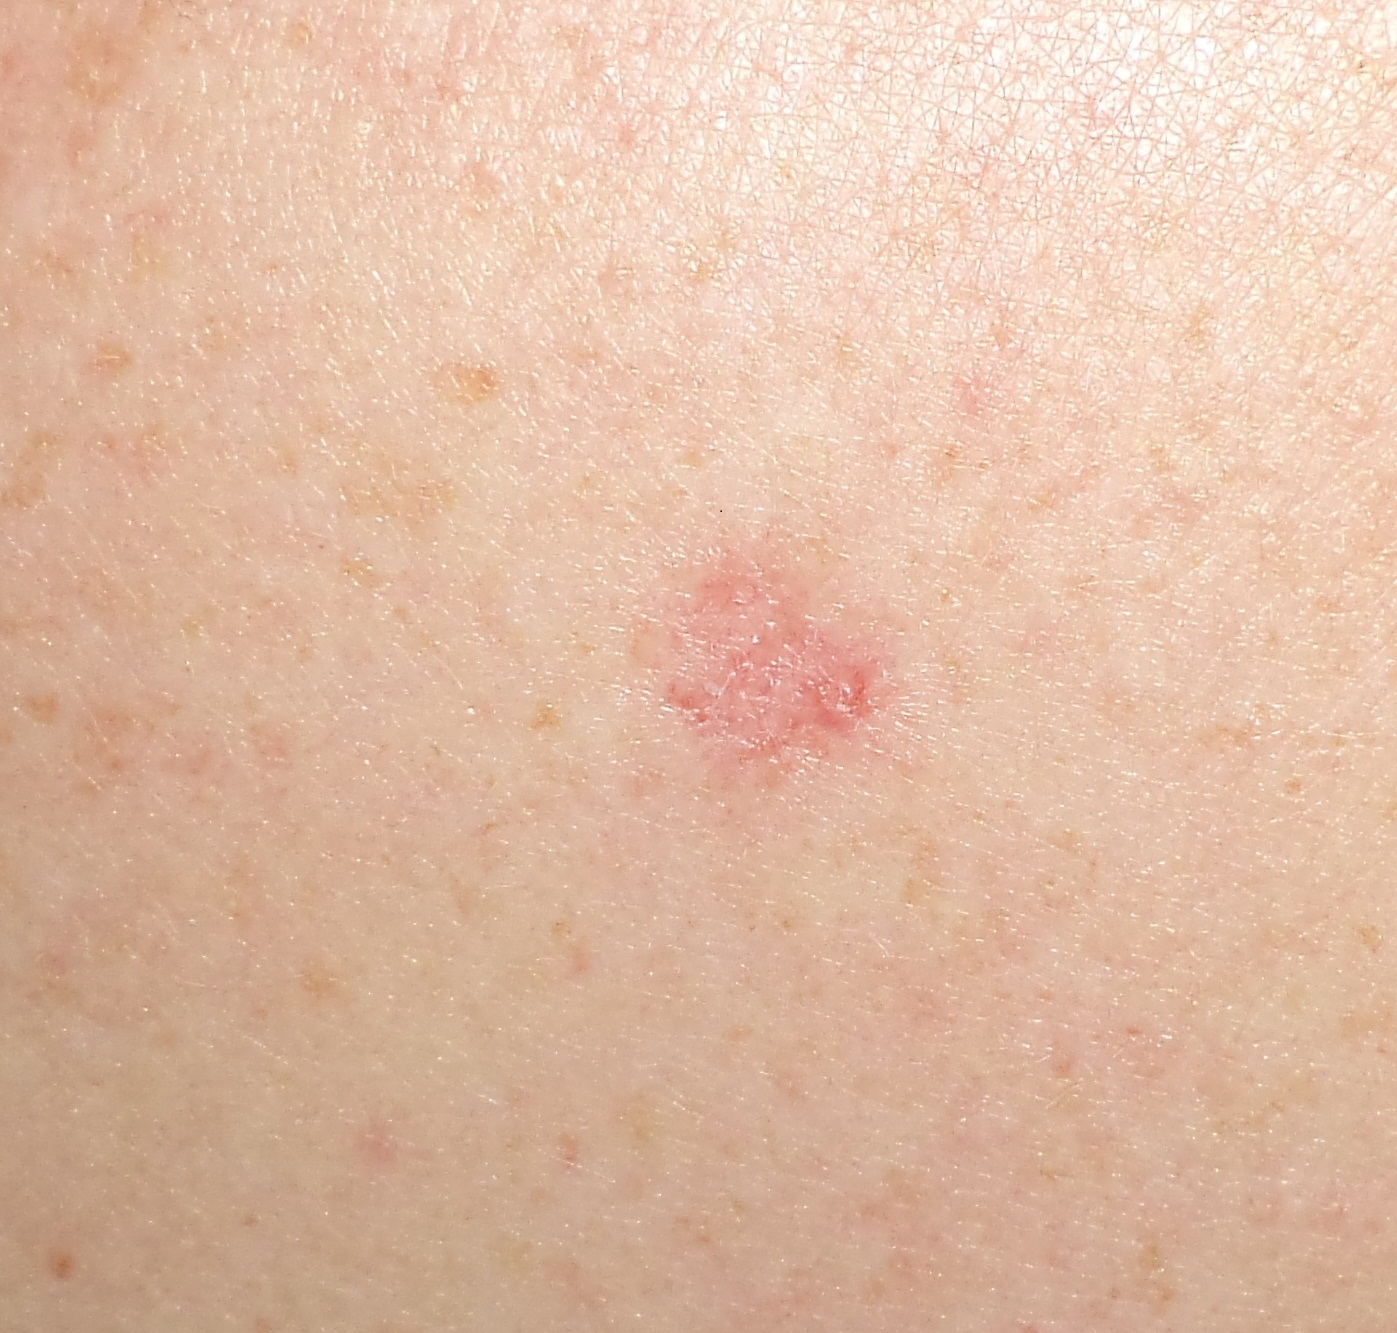 Picture of Basal Cell Carcinoma - WebMD